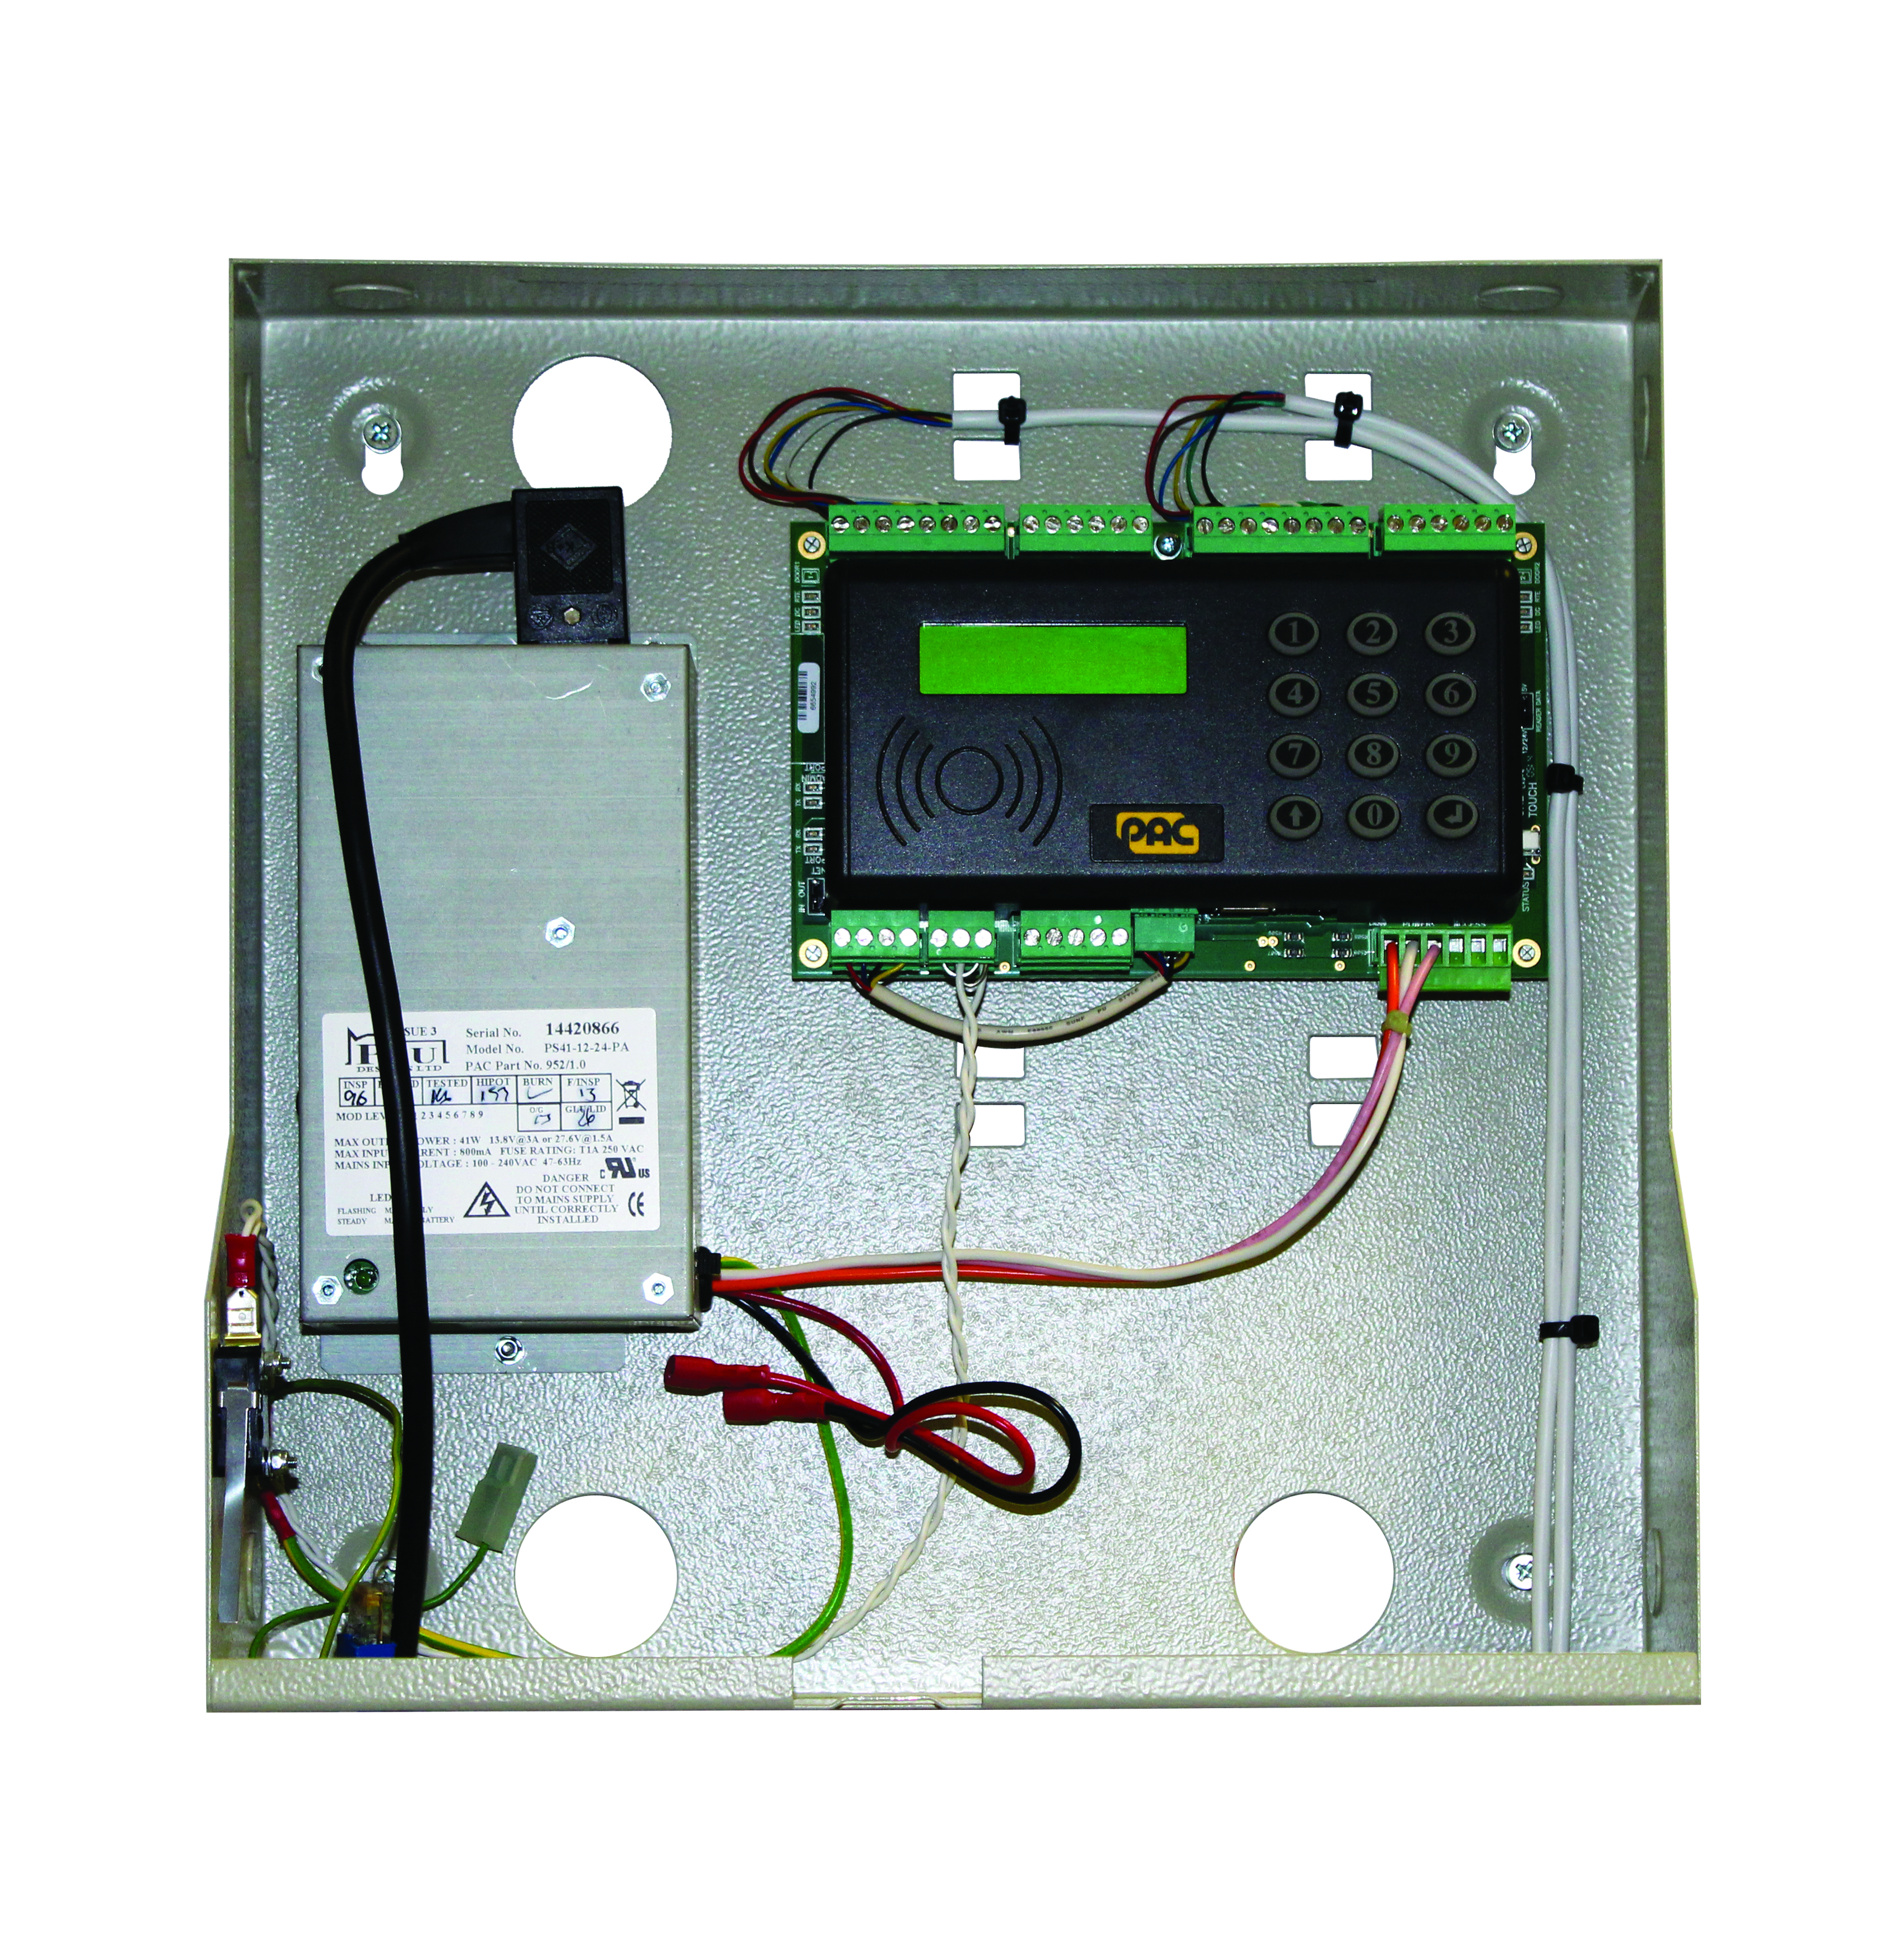 PAC212 HF boxed 2 door controller with 3Amp PSU